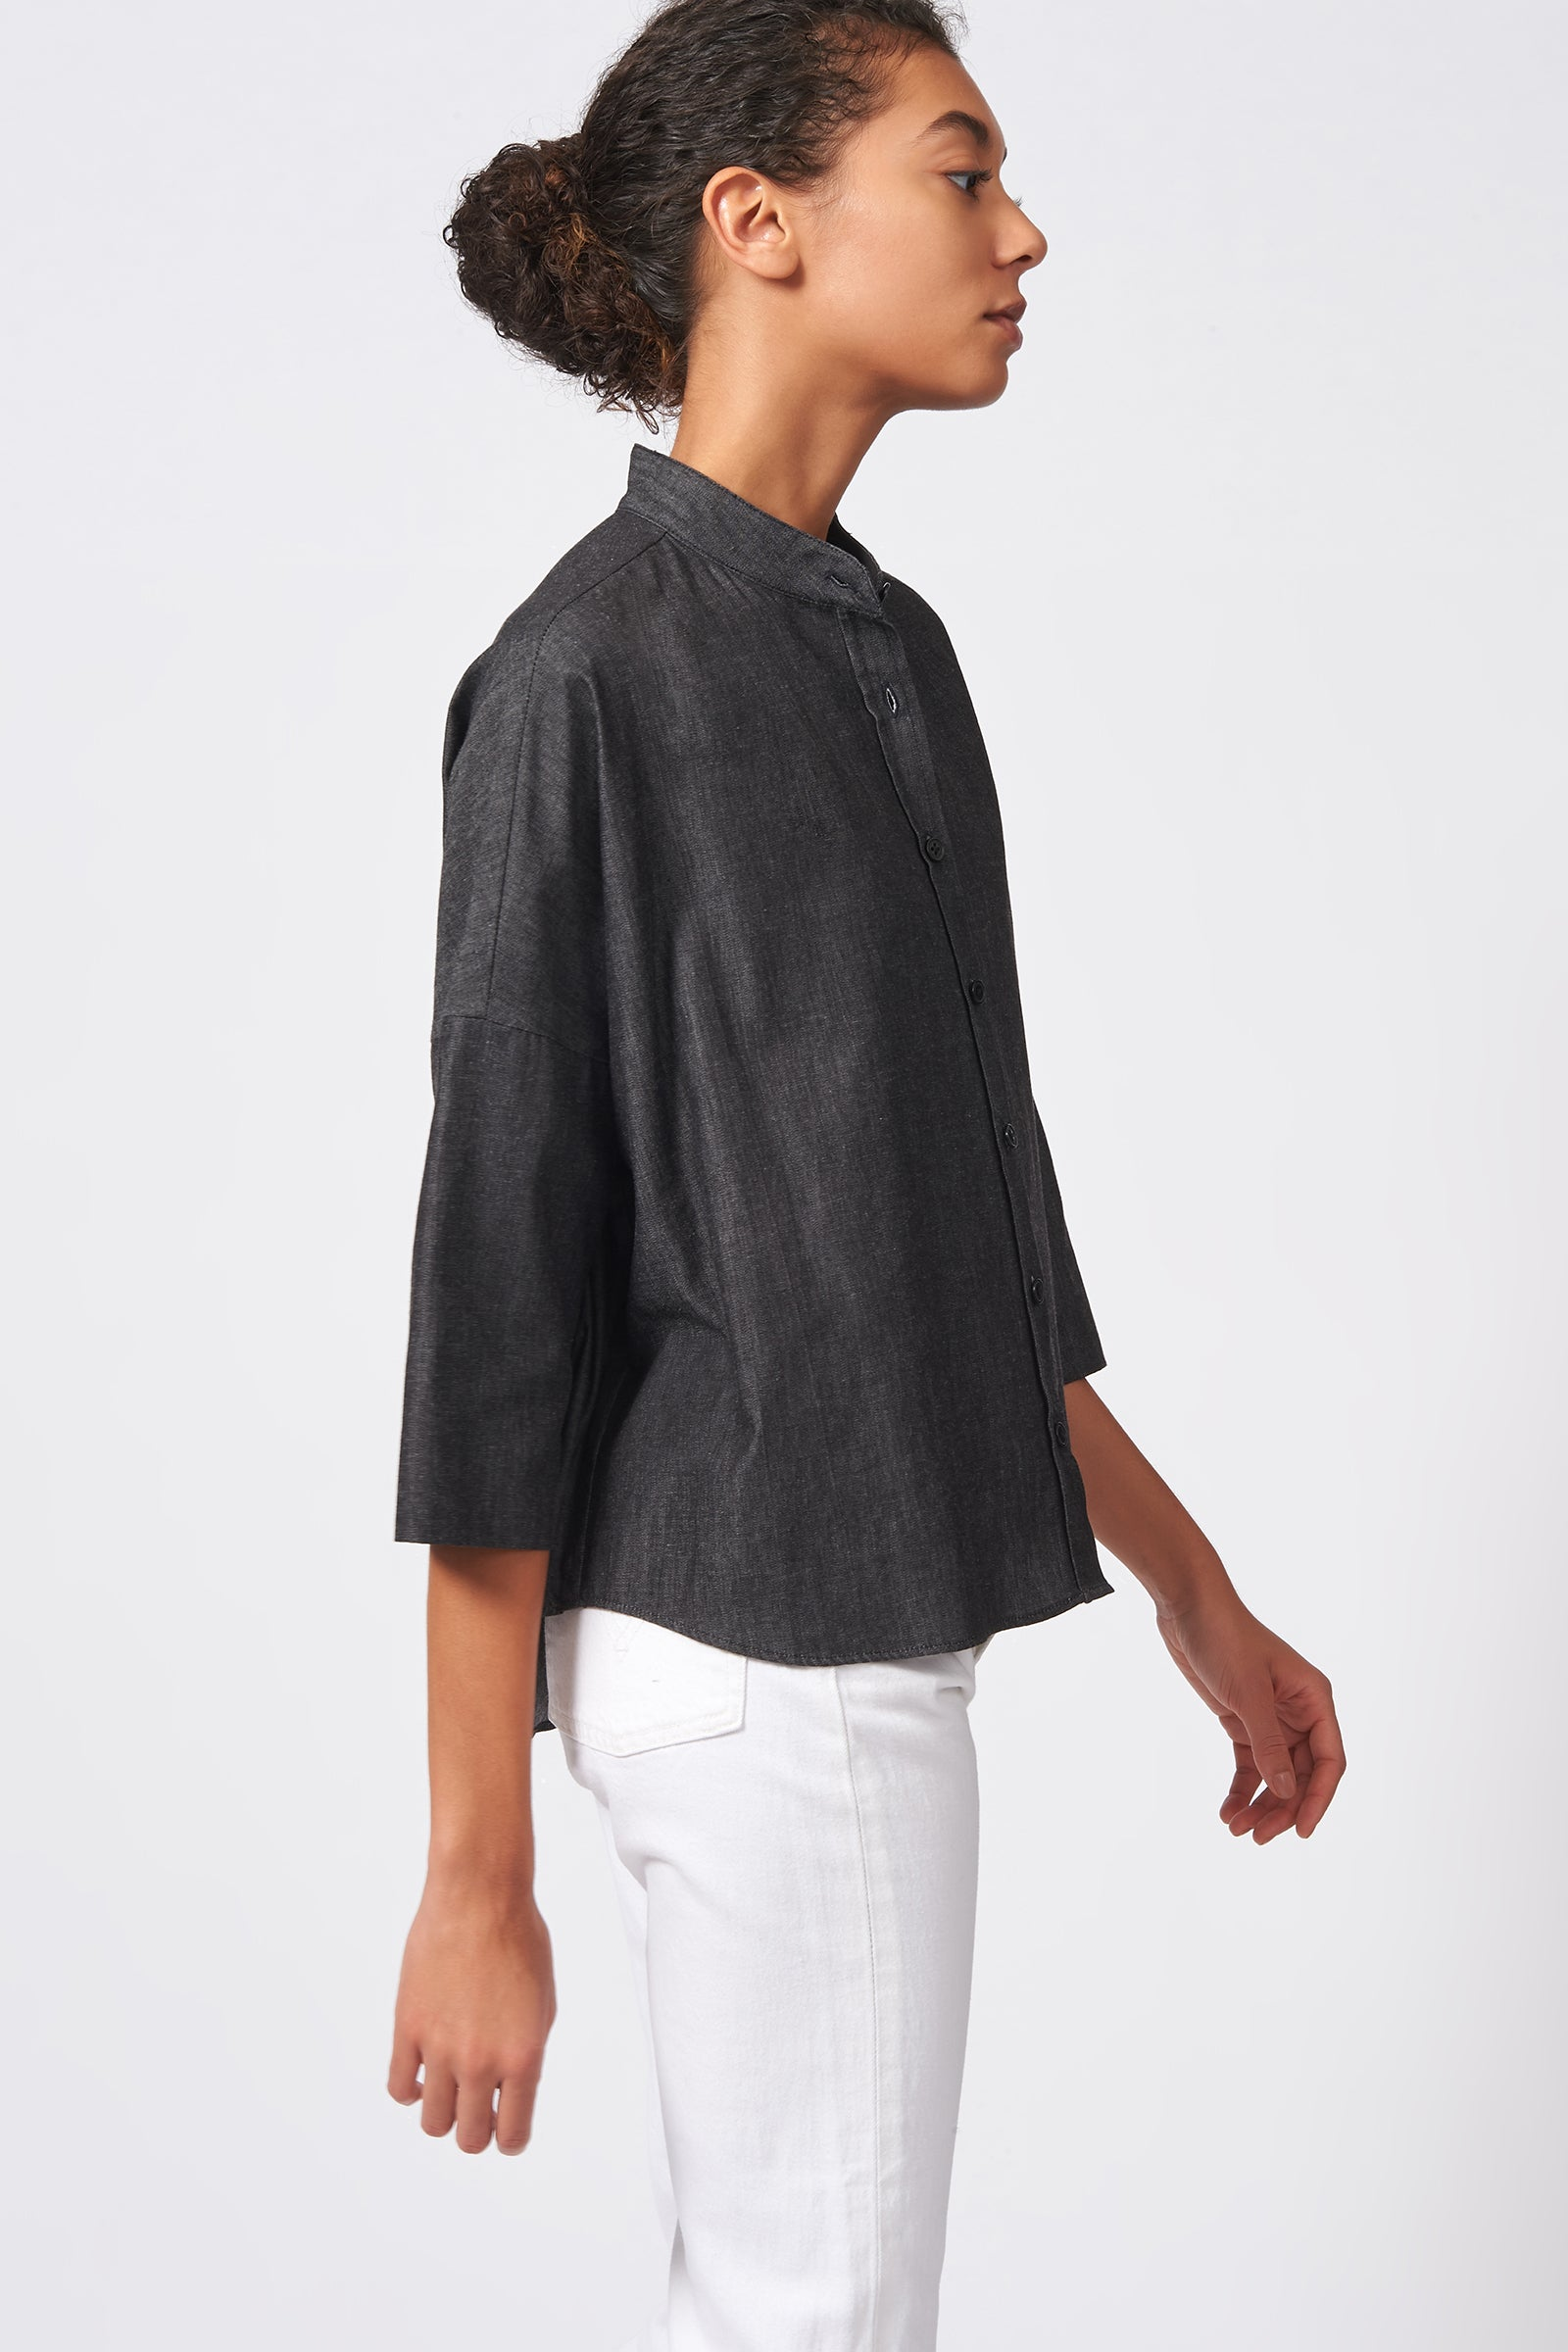 Kal Rieman Drop Shoulder Top in Dark Denim on Model Side View